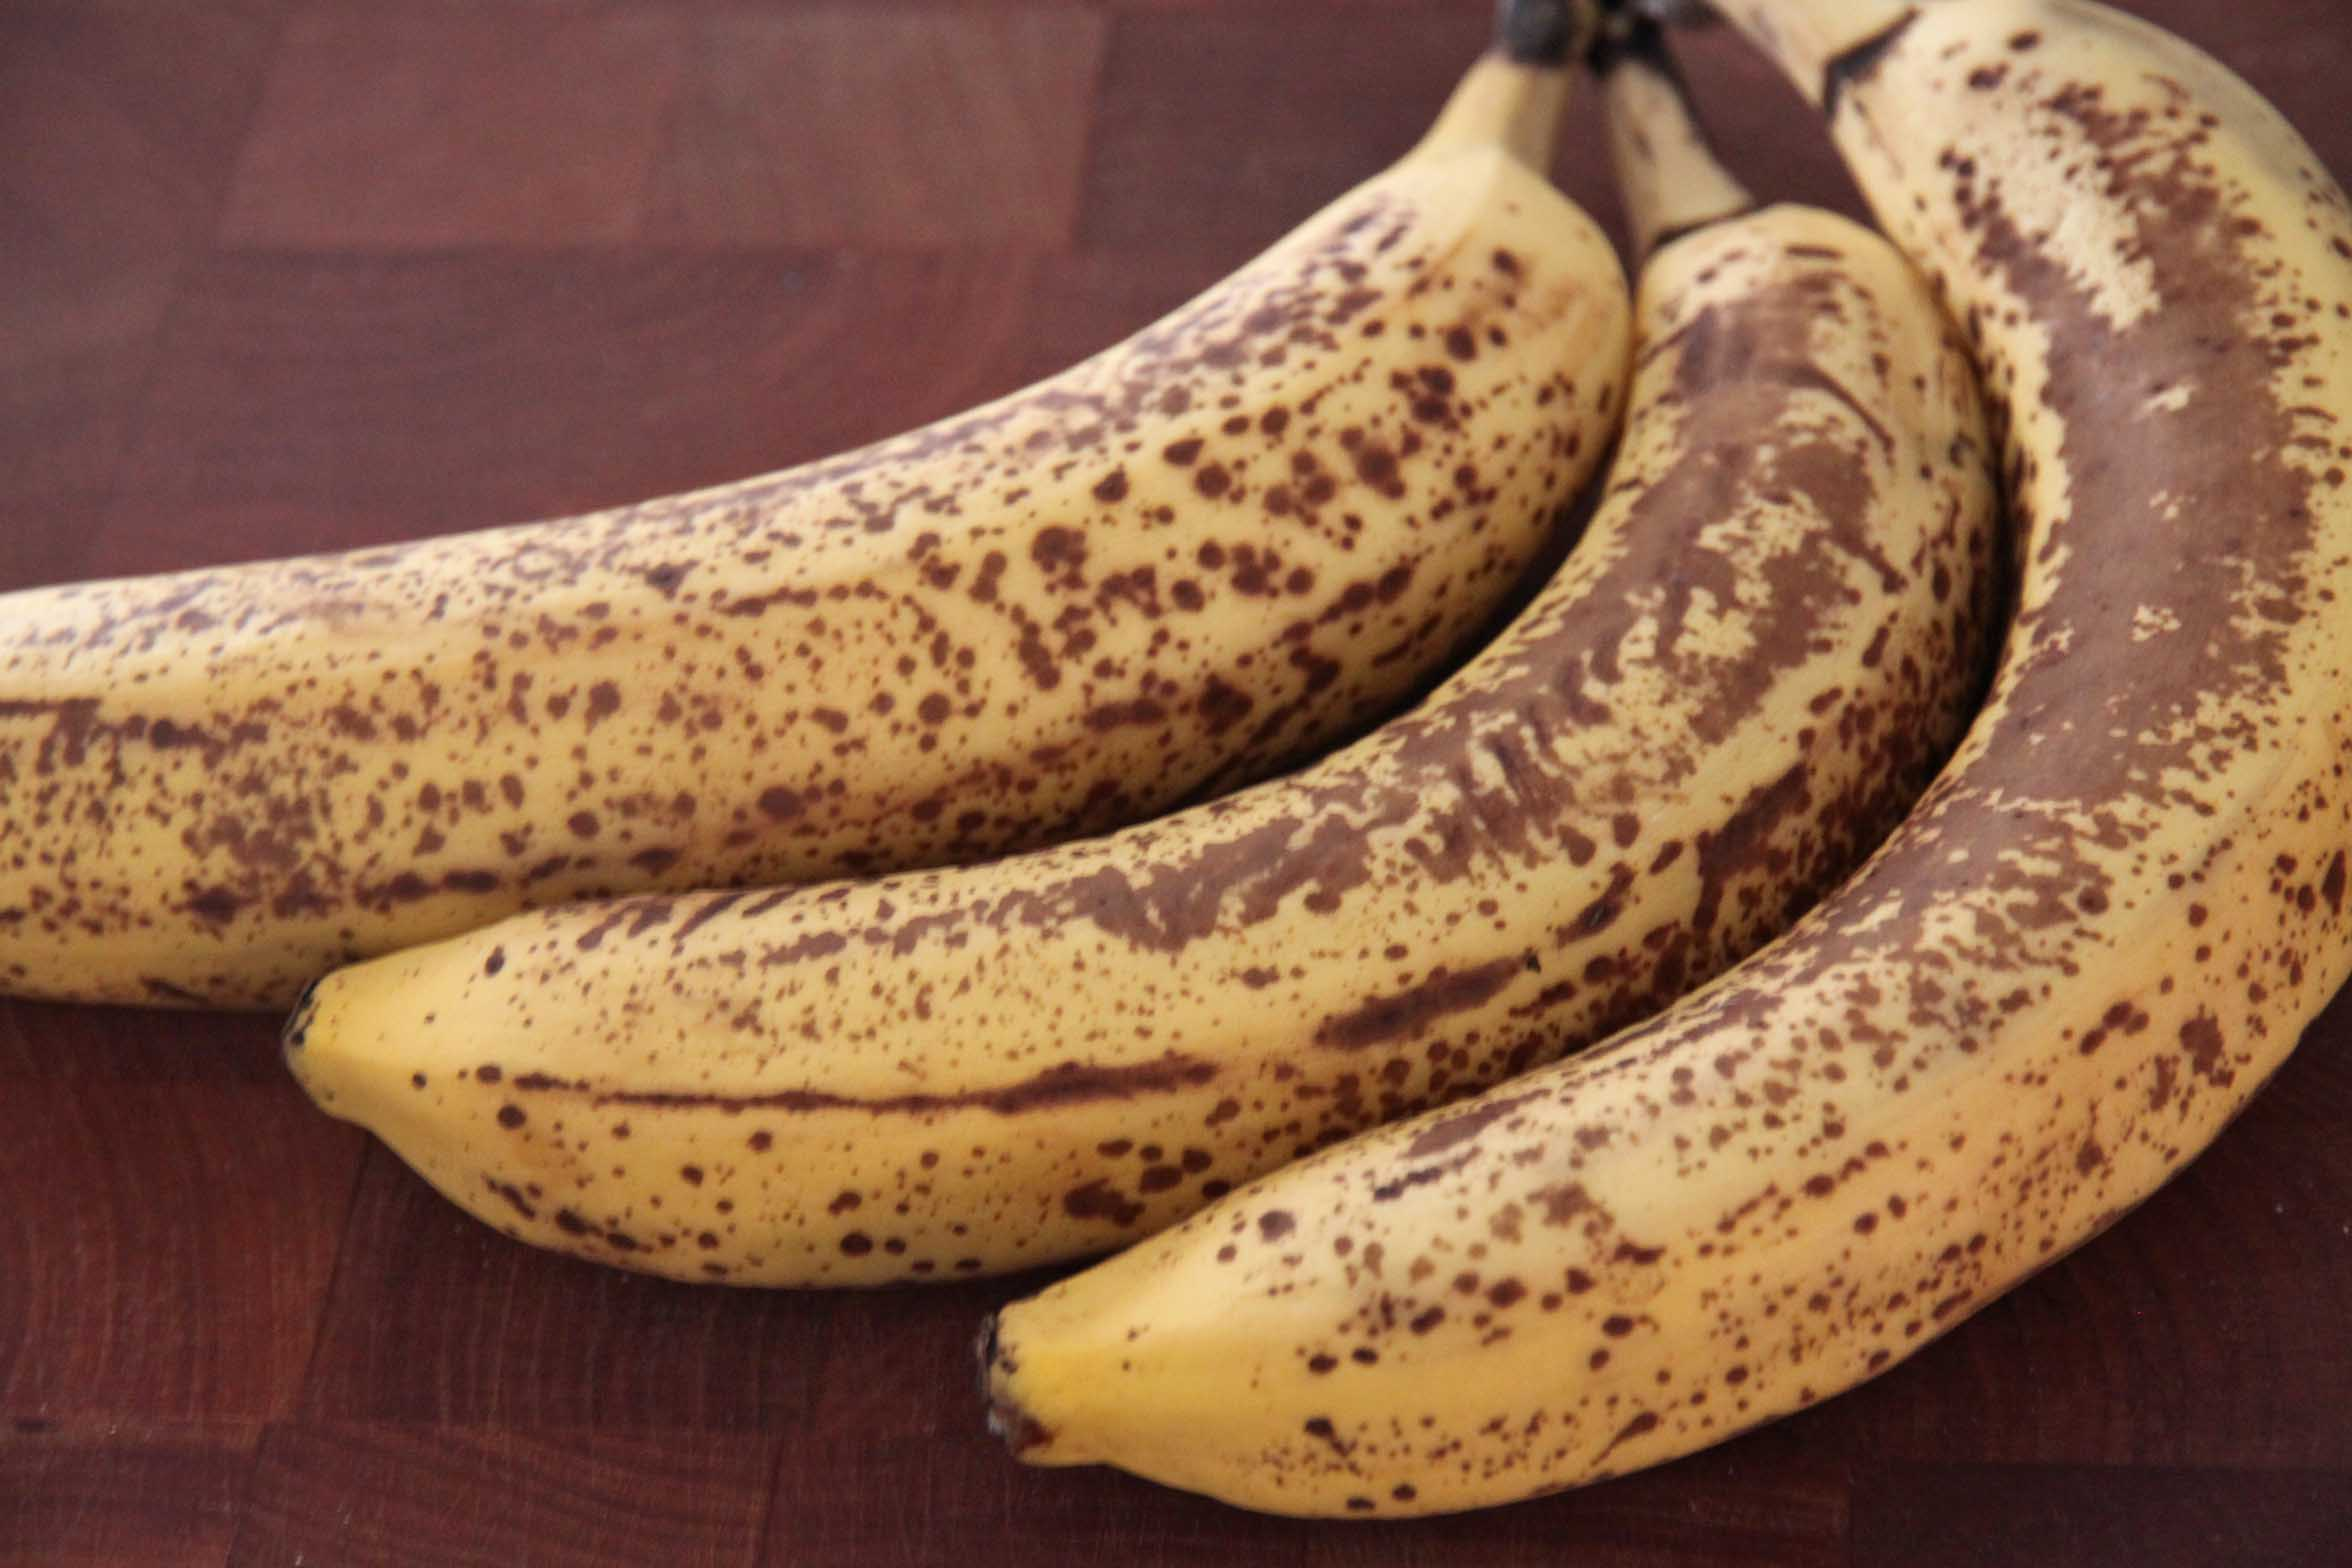 Brown banana. Is spots on the